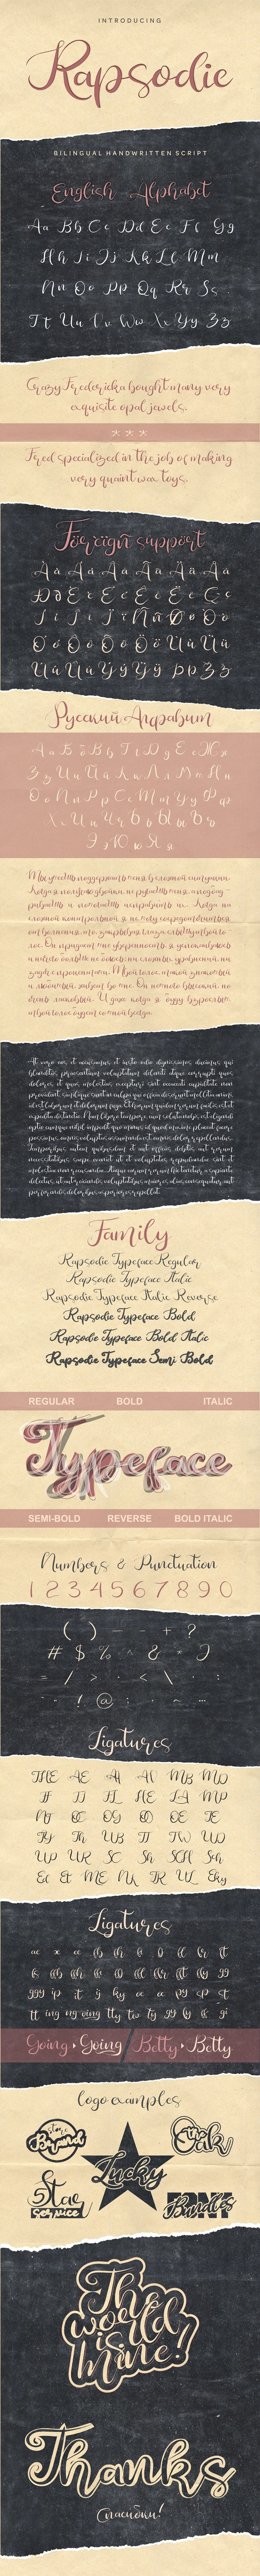 Rapsodie - Multilingual Script With English and Russian Letters - Hand-writing Script